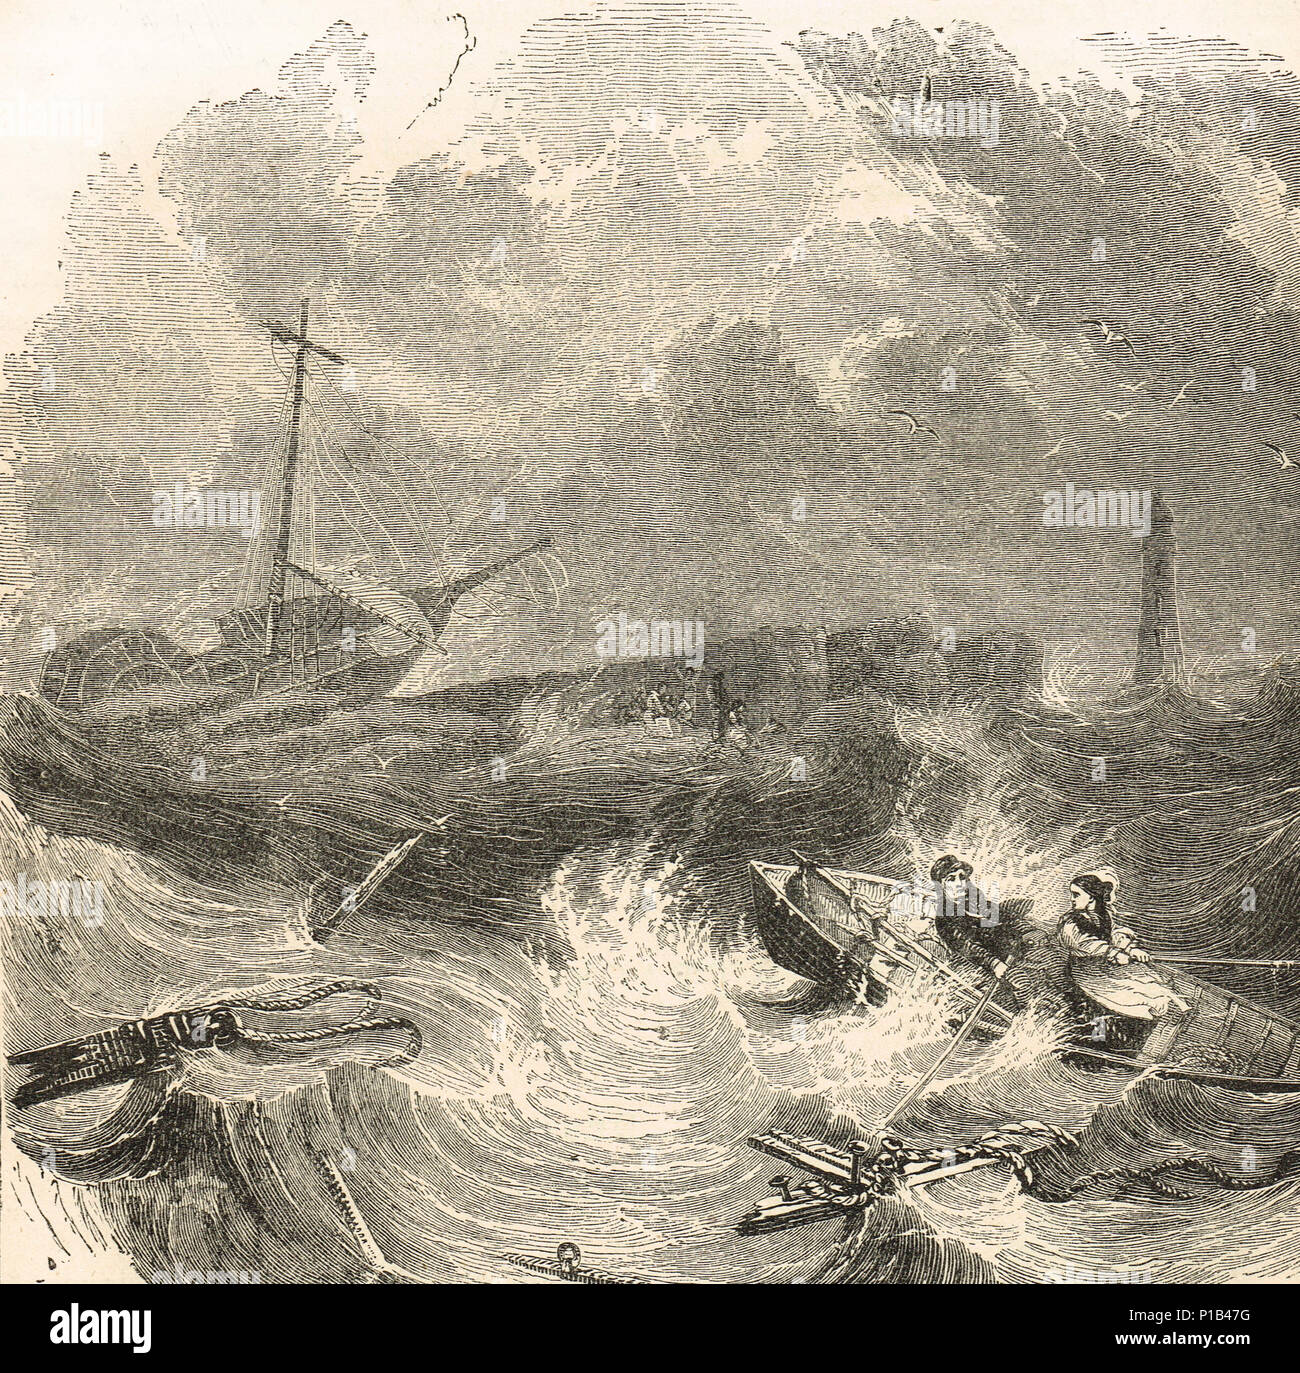 Grace Darling, heroine of the Forfarshire wreck of 1838, rescuing survivors - Stock Image